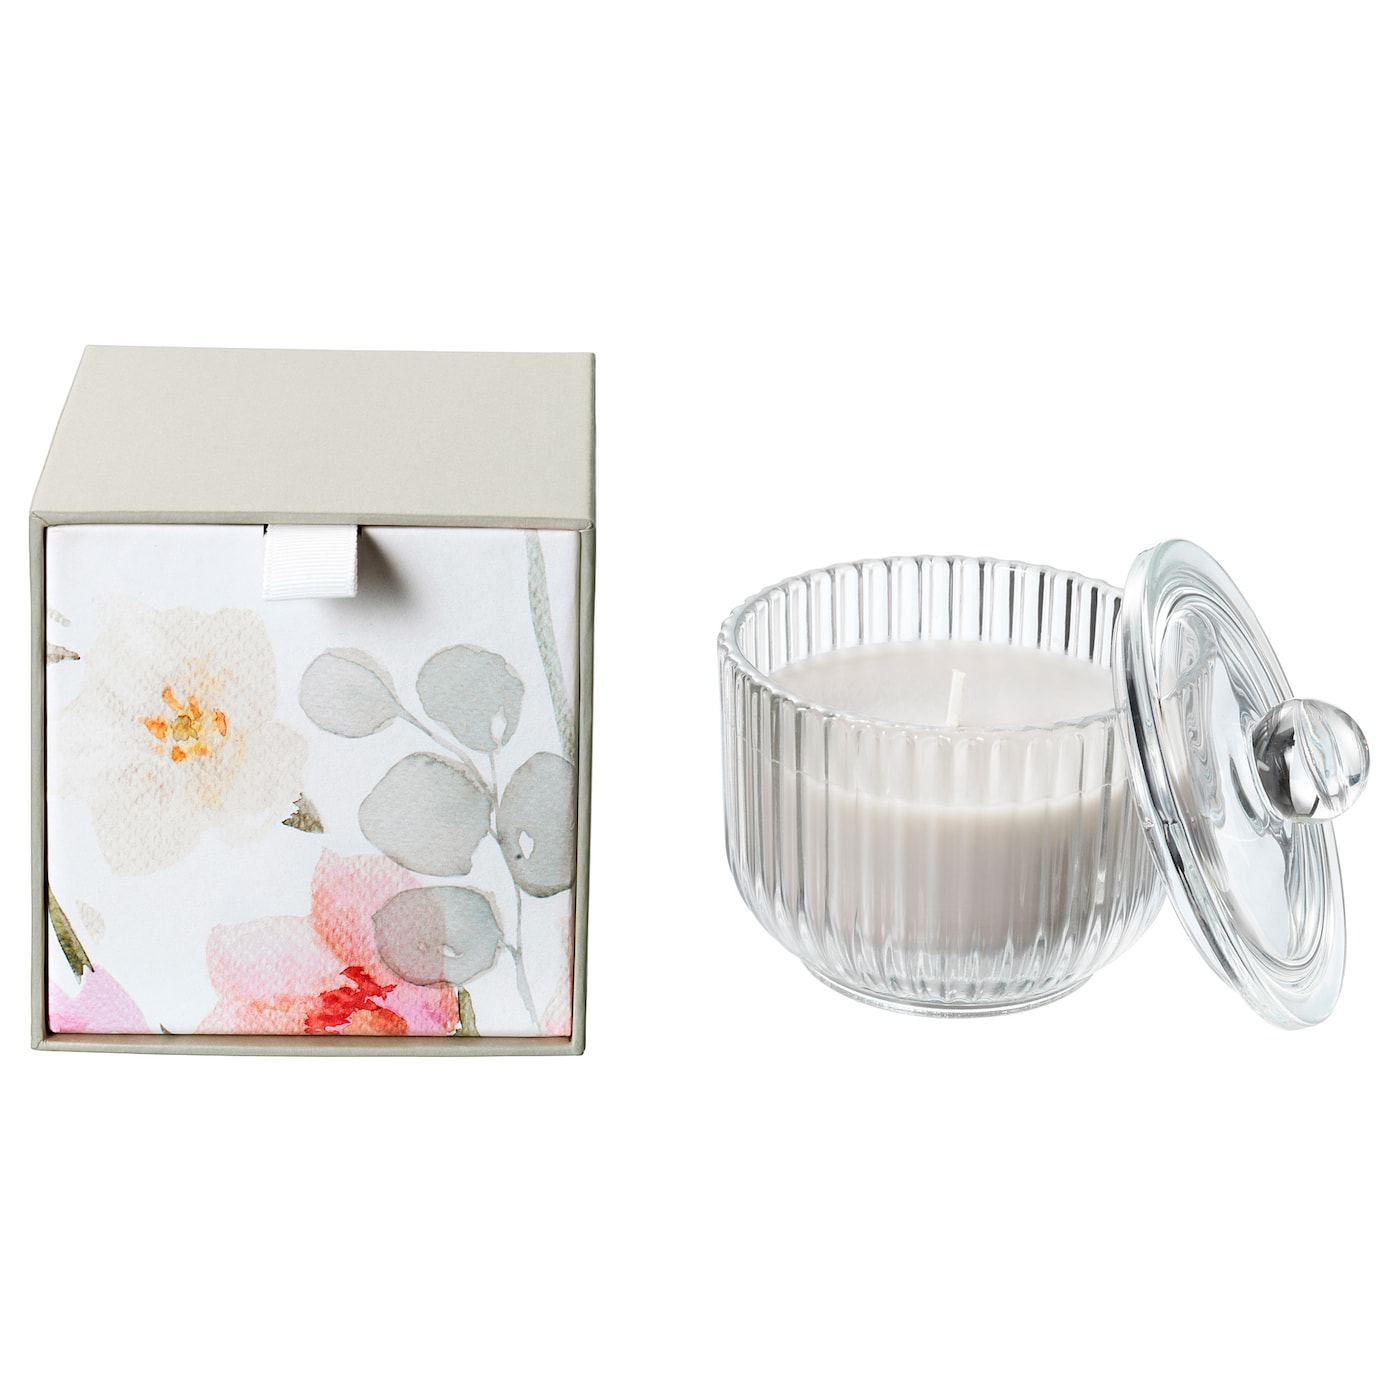 IKEA BLOMDOFT scented candle in glass